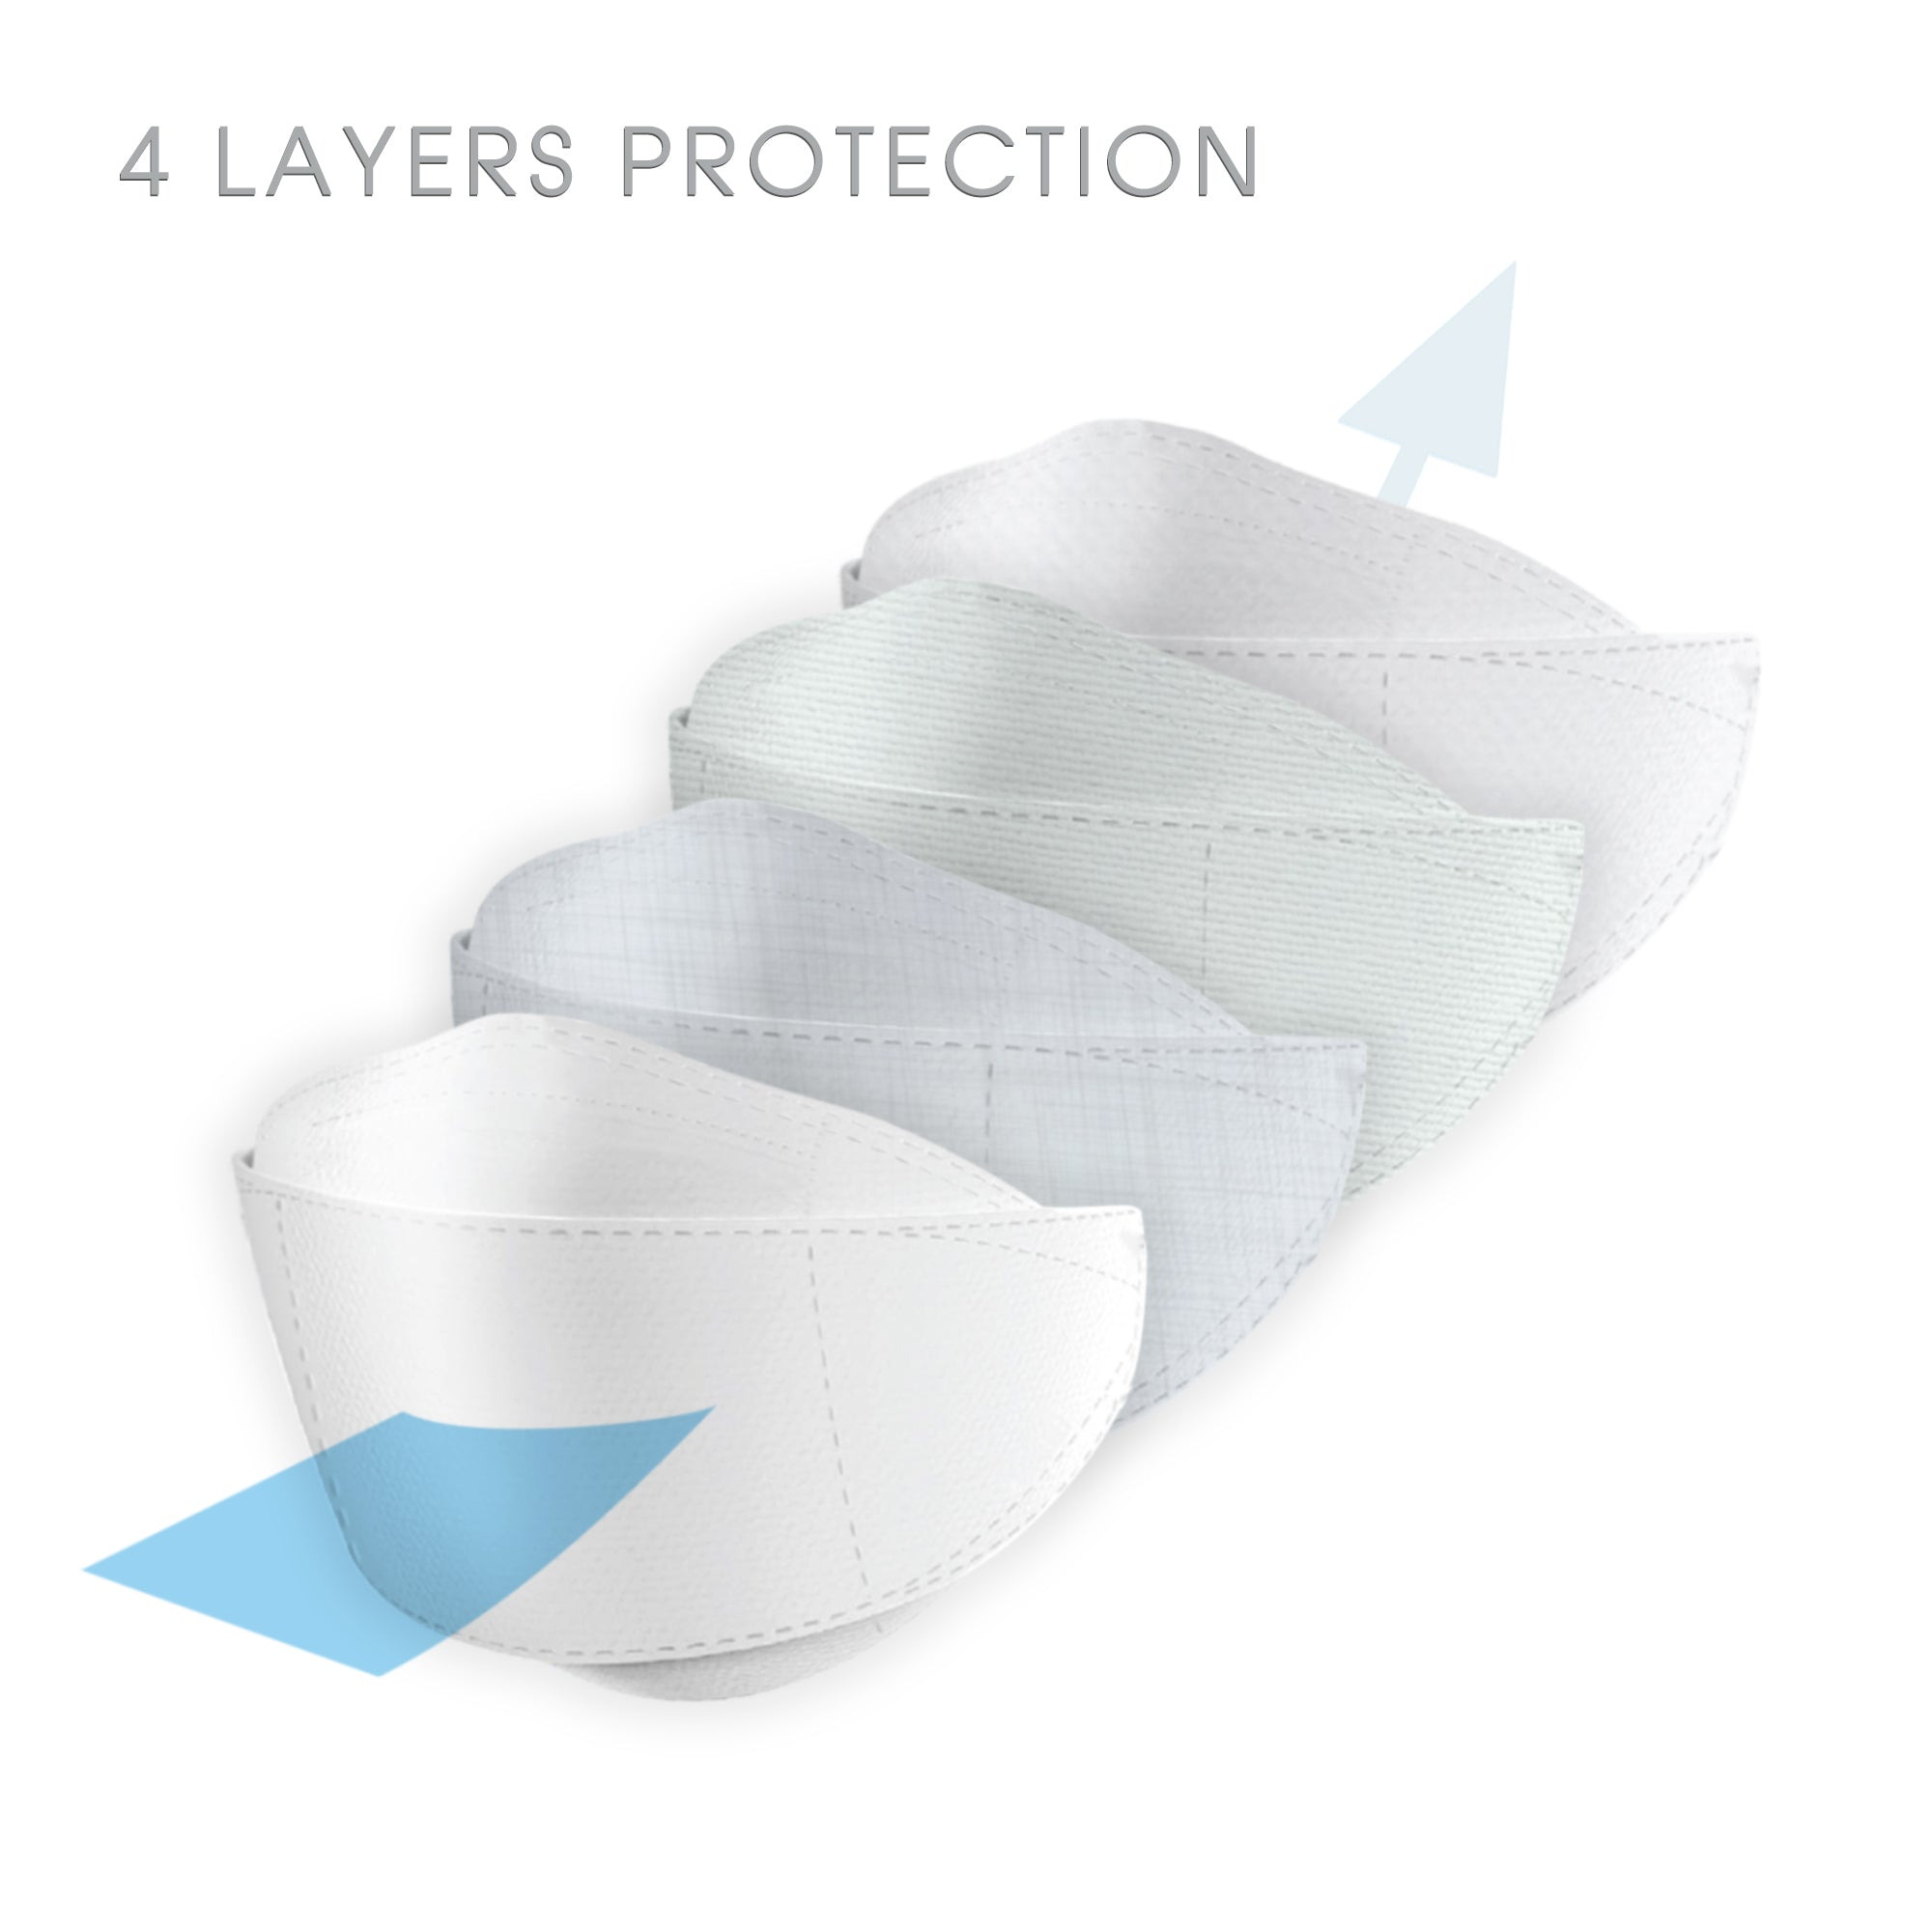 ILWOUL 4 Layer Disposable Face Mask (20-pack)